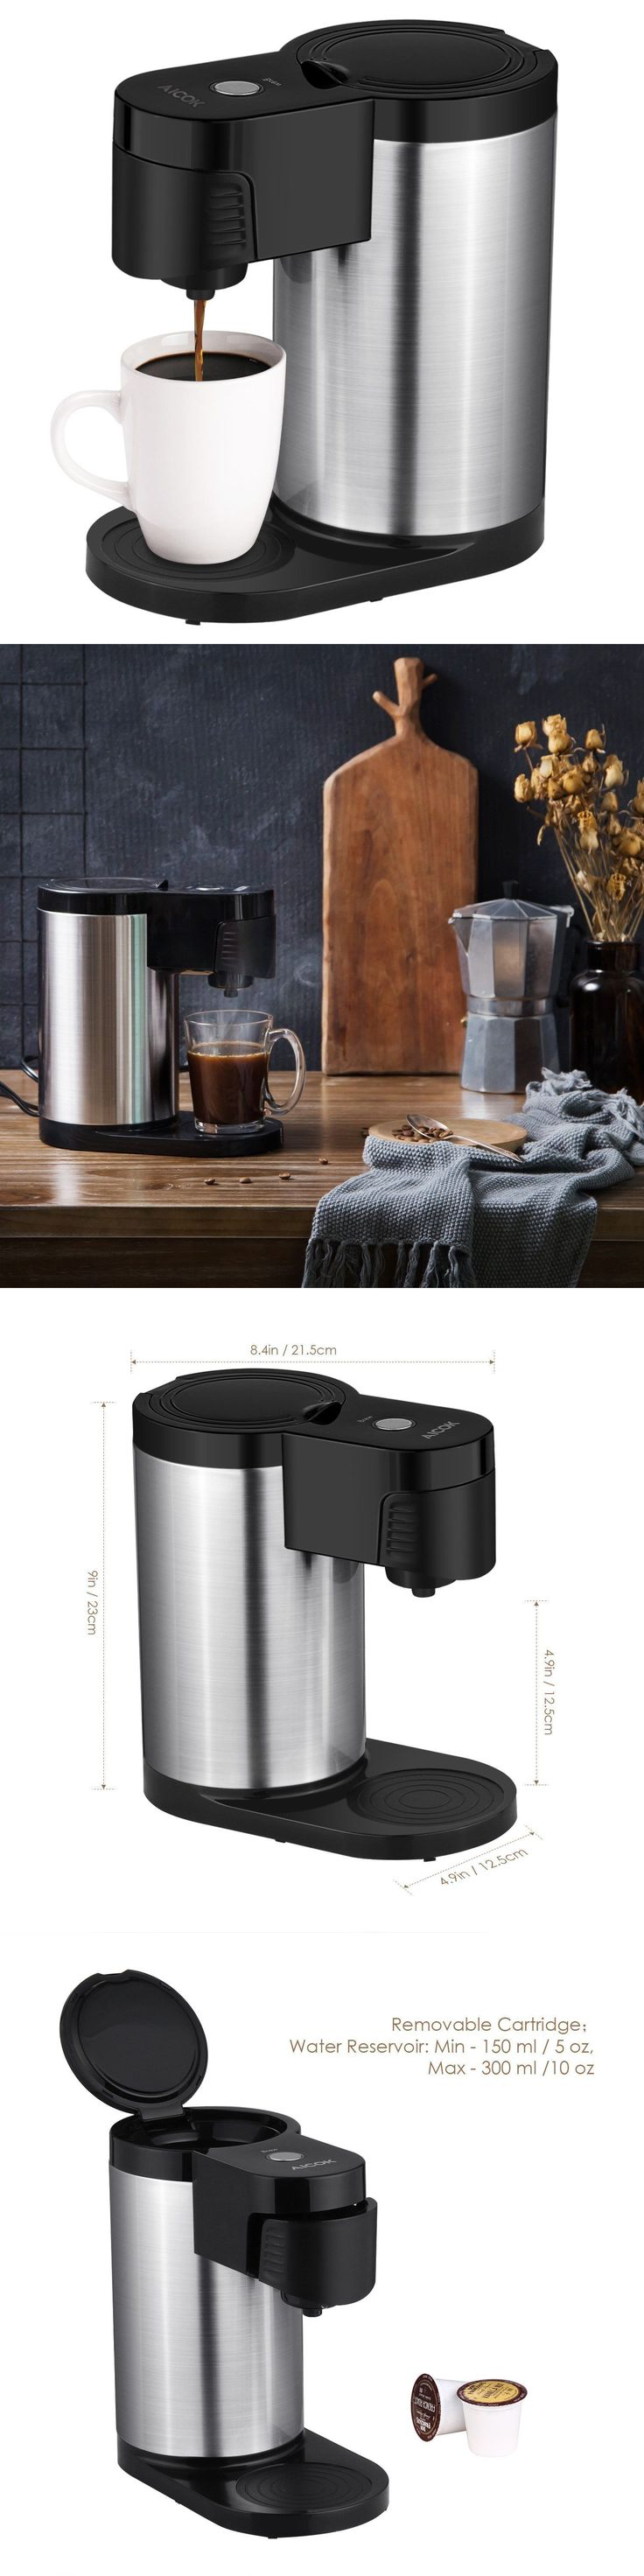 Single Serve Brewers 156775: Aicok Single Serve Coffee Maker, Stainless Steel Coffee Machine Quick Brew -> BUY IT NOW ONLY: $33.99 on eBay!